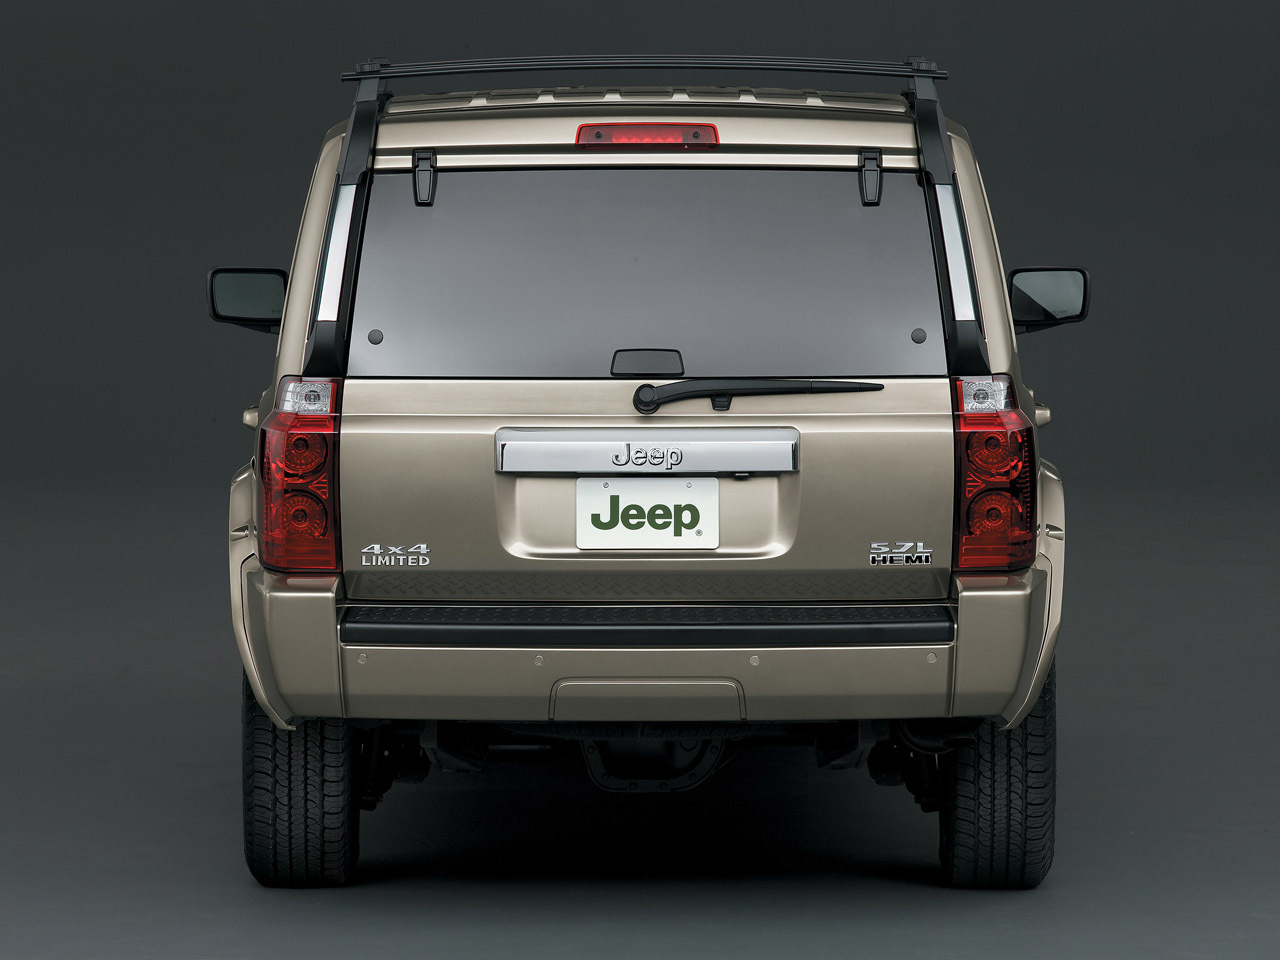 chrysler recalling hundreds of thousands of jeep grand review ebooks. Cars Review. Best American Auto & Cars Review